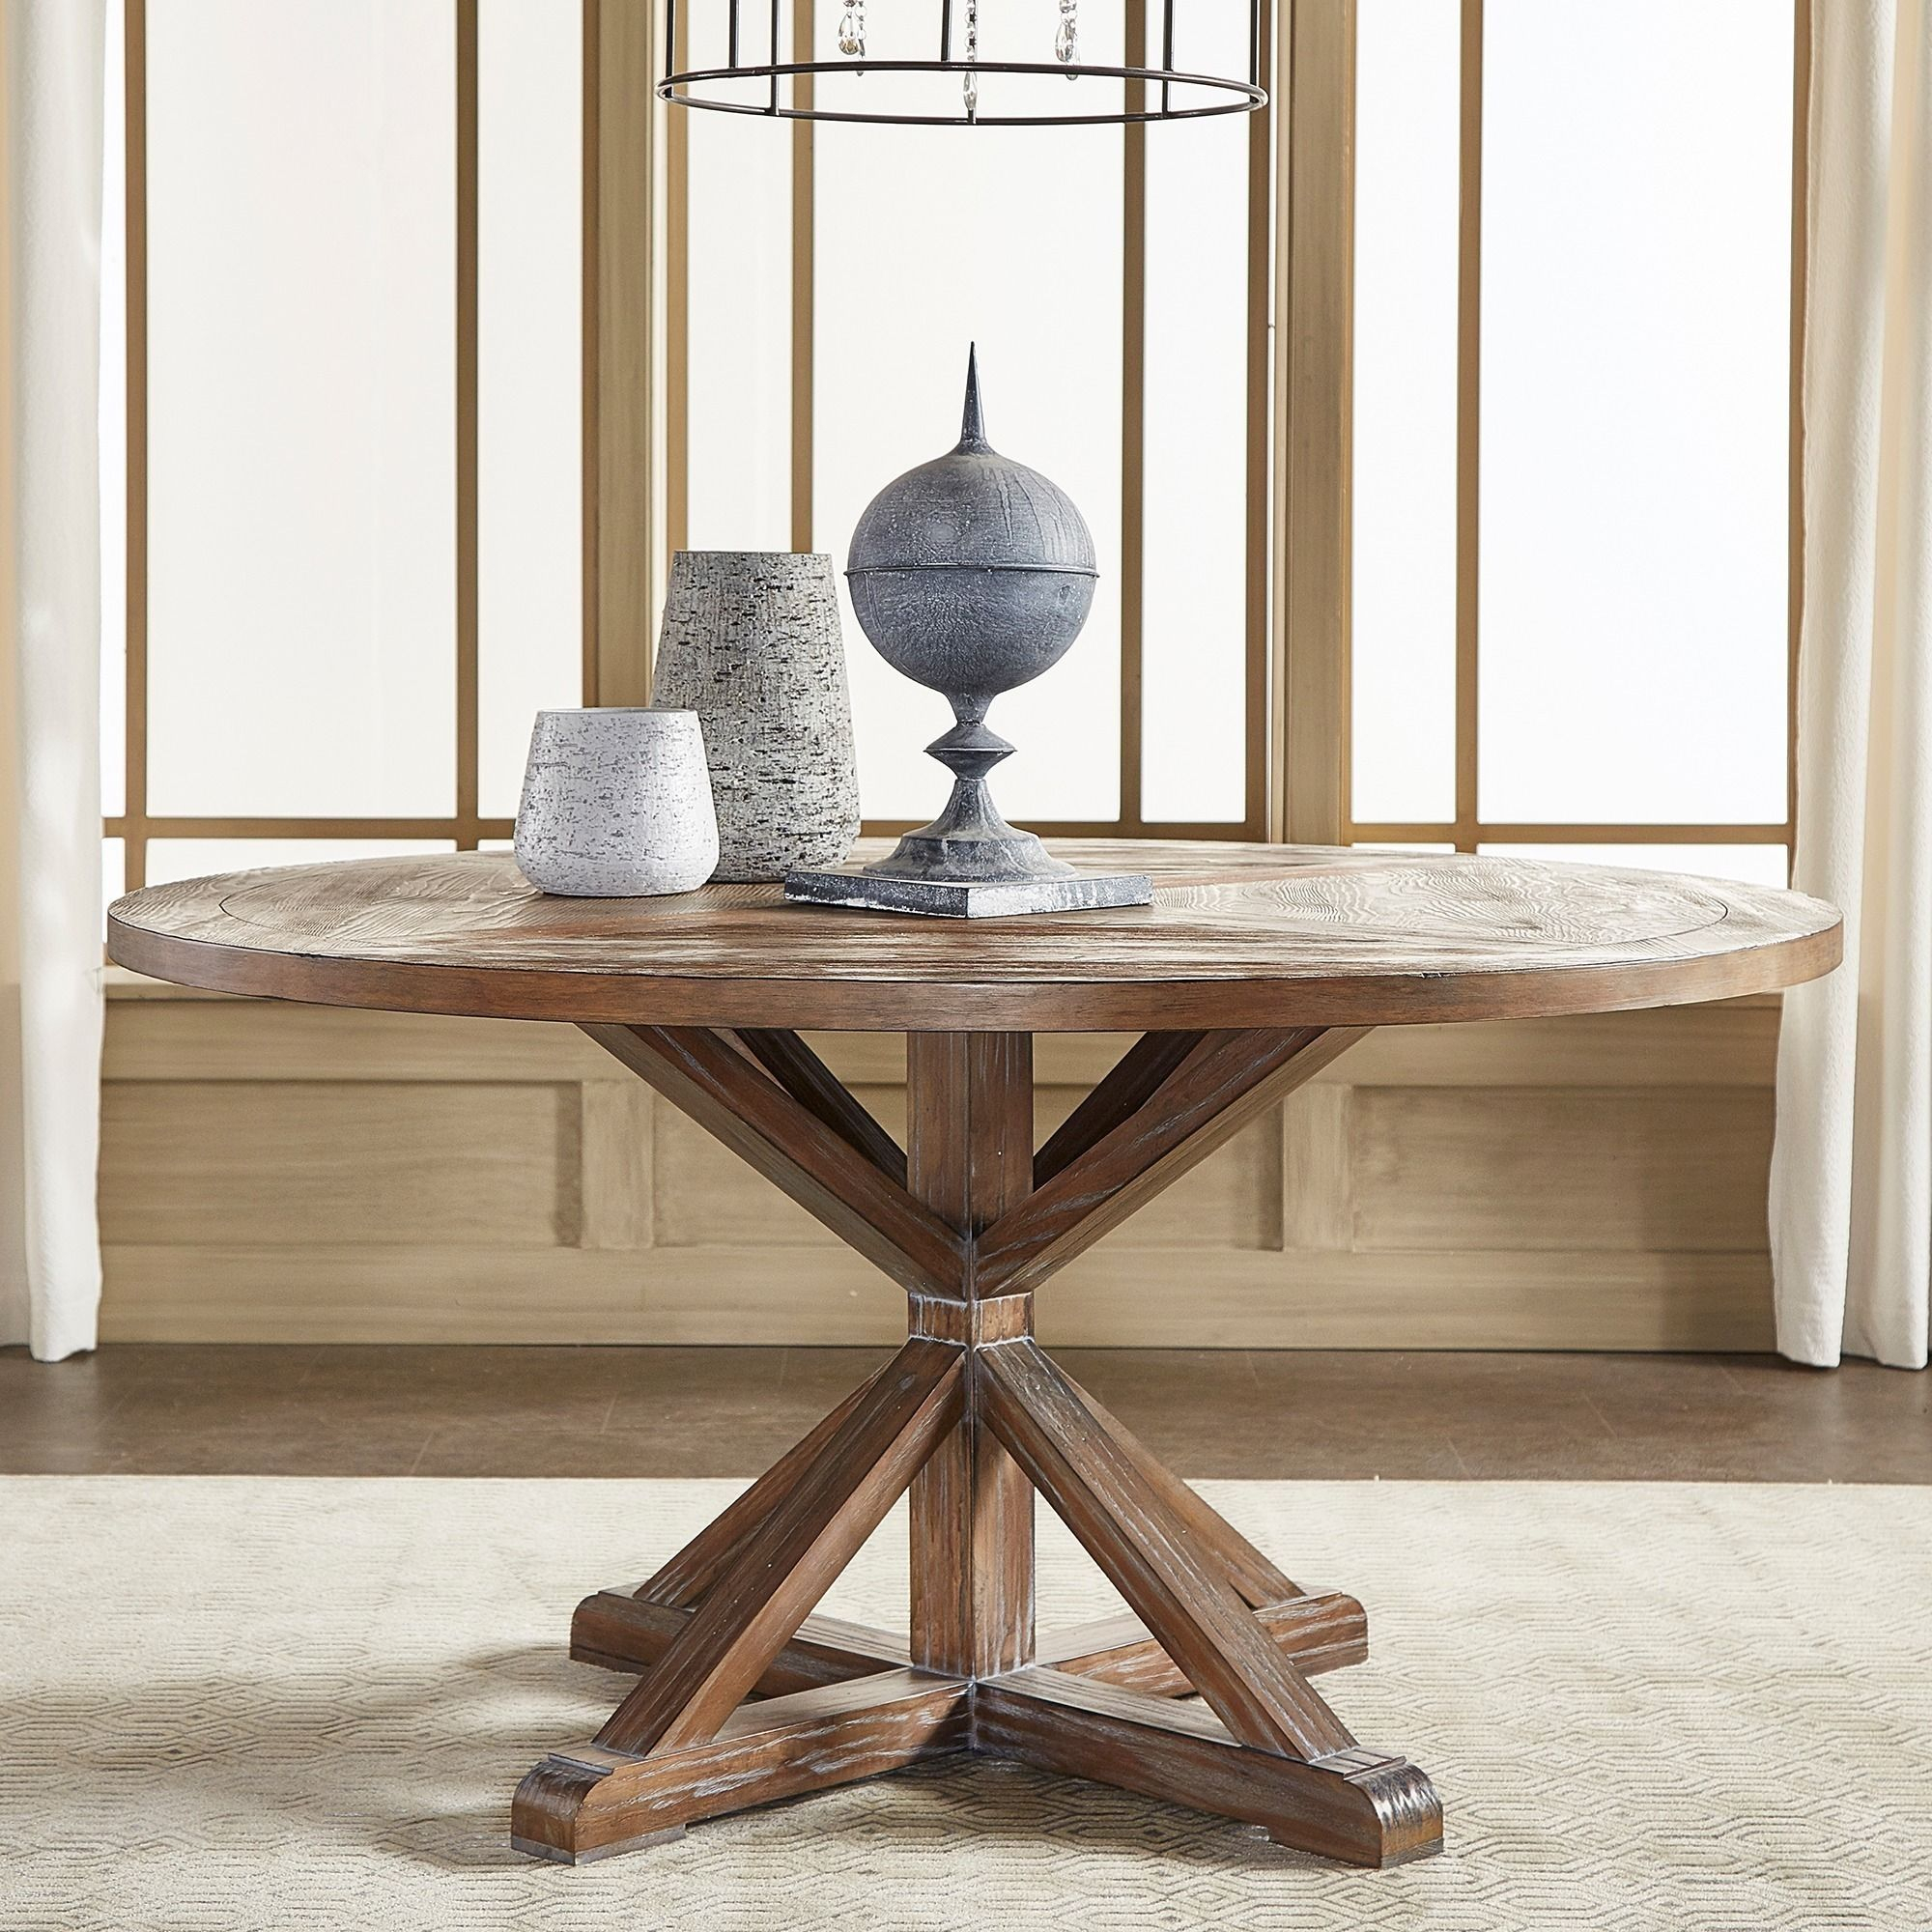 Benchwright Rustic X Base Round Pine Wood Dining Table Throughout Most Recent Rustic Mahogany Benchwright Pedestal Extending Dining Tables (View 18 of 25)